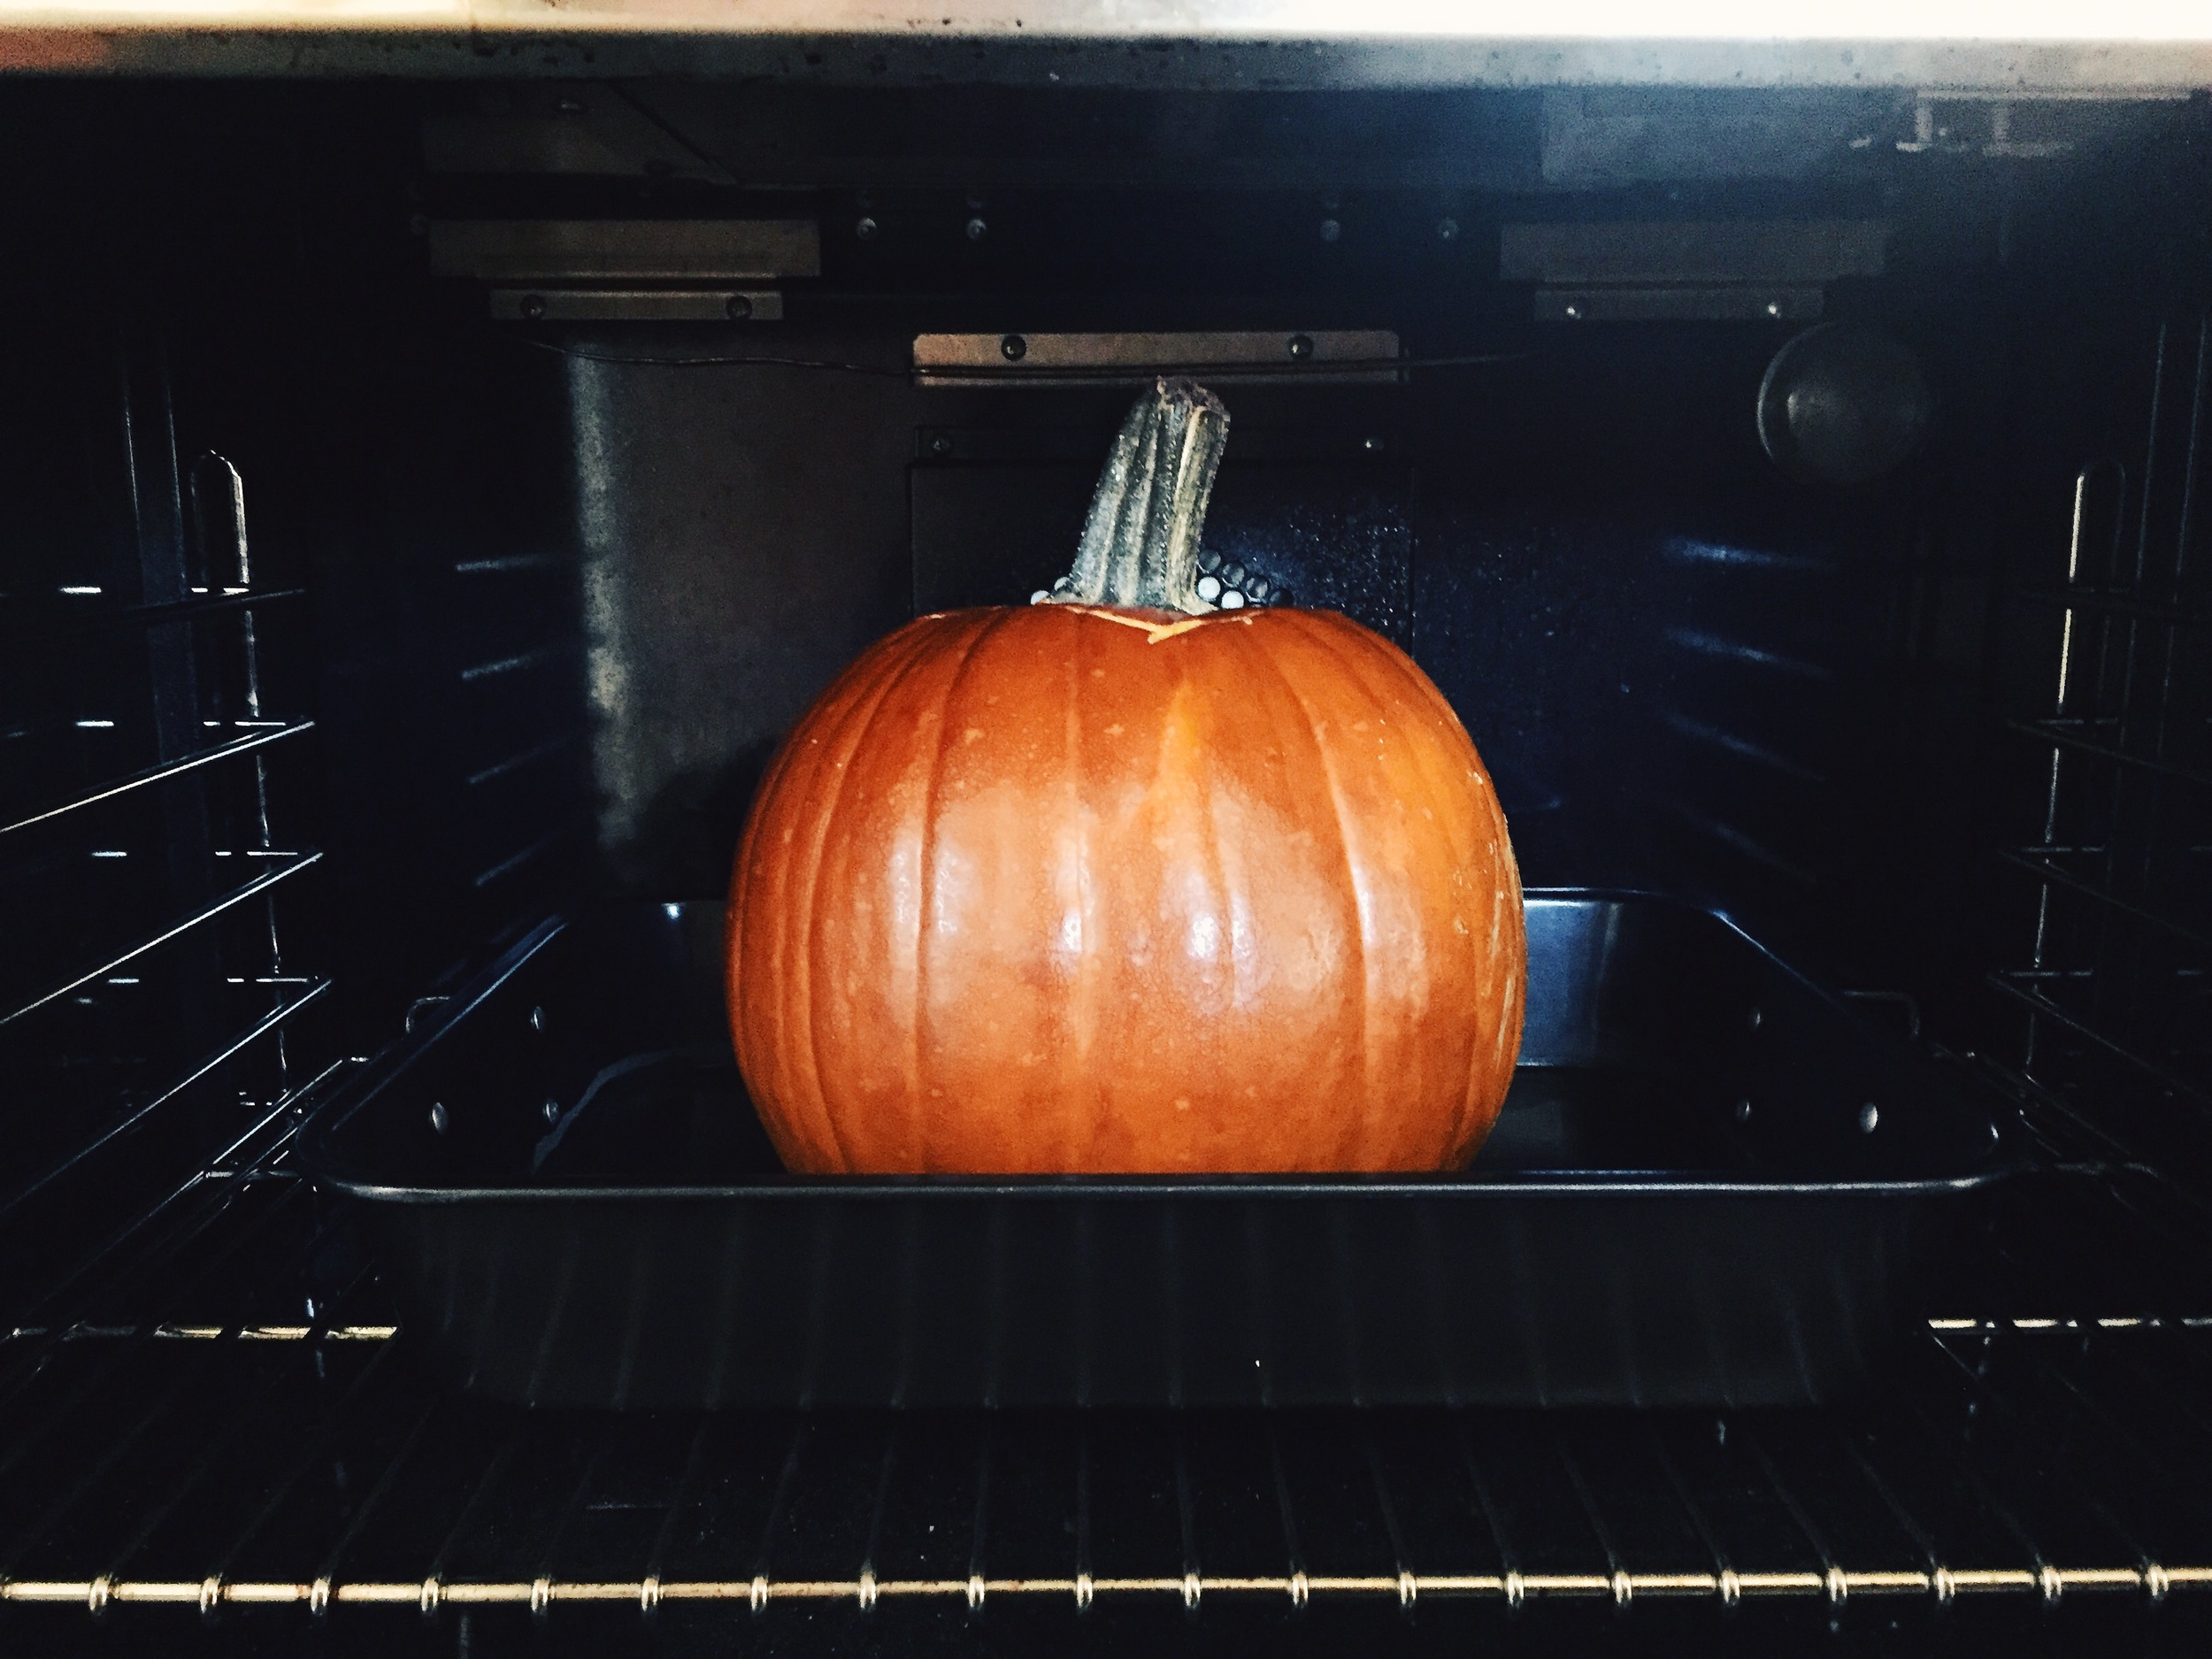 Half way. Check pumpkin frequently to be sure there is always water in the pan